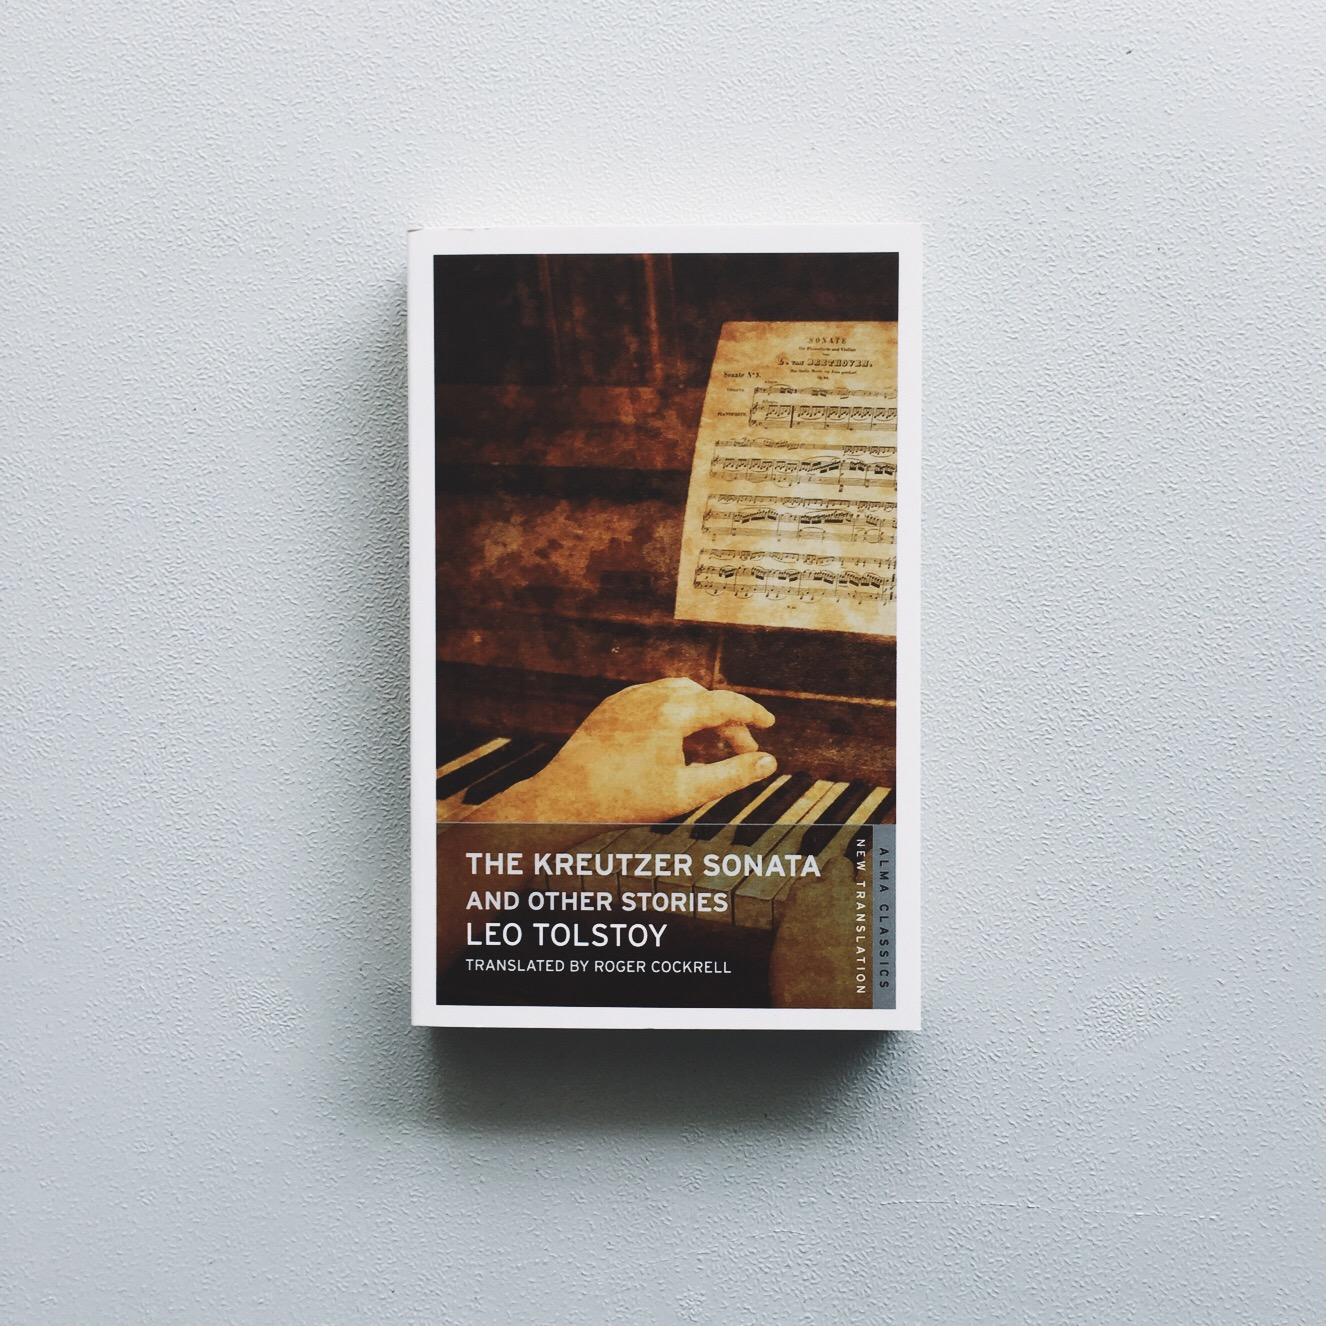 6/ The Kreutzer Sonata and Other Stories — Leo Tolstoy